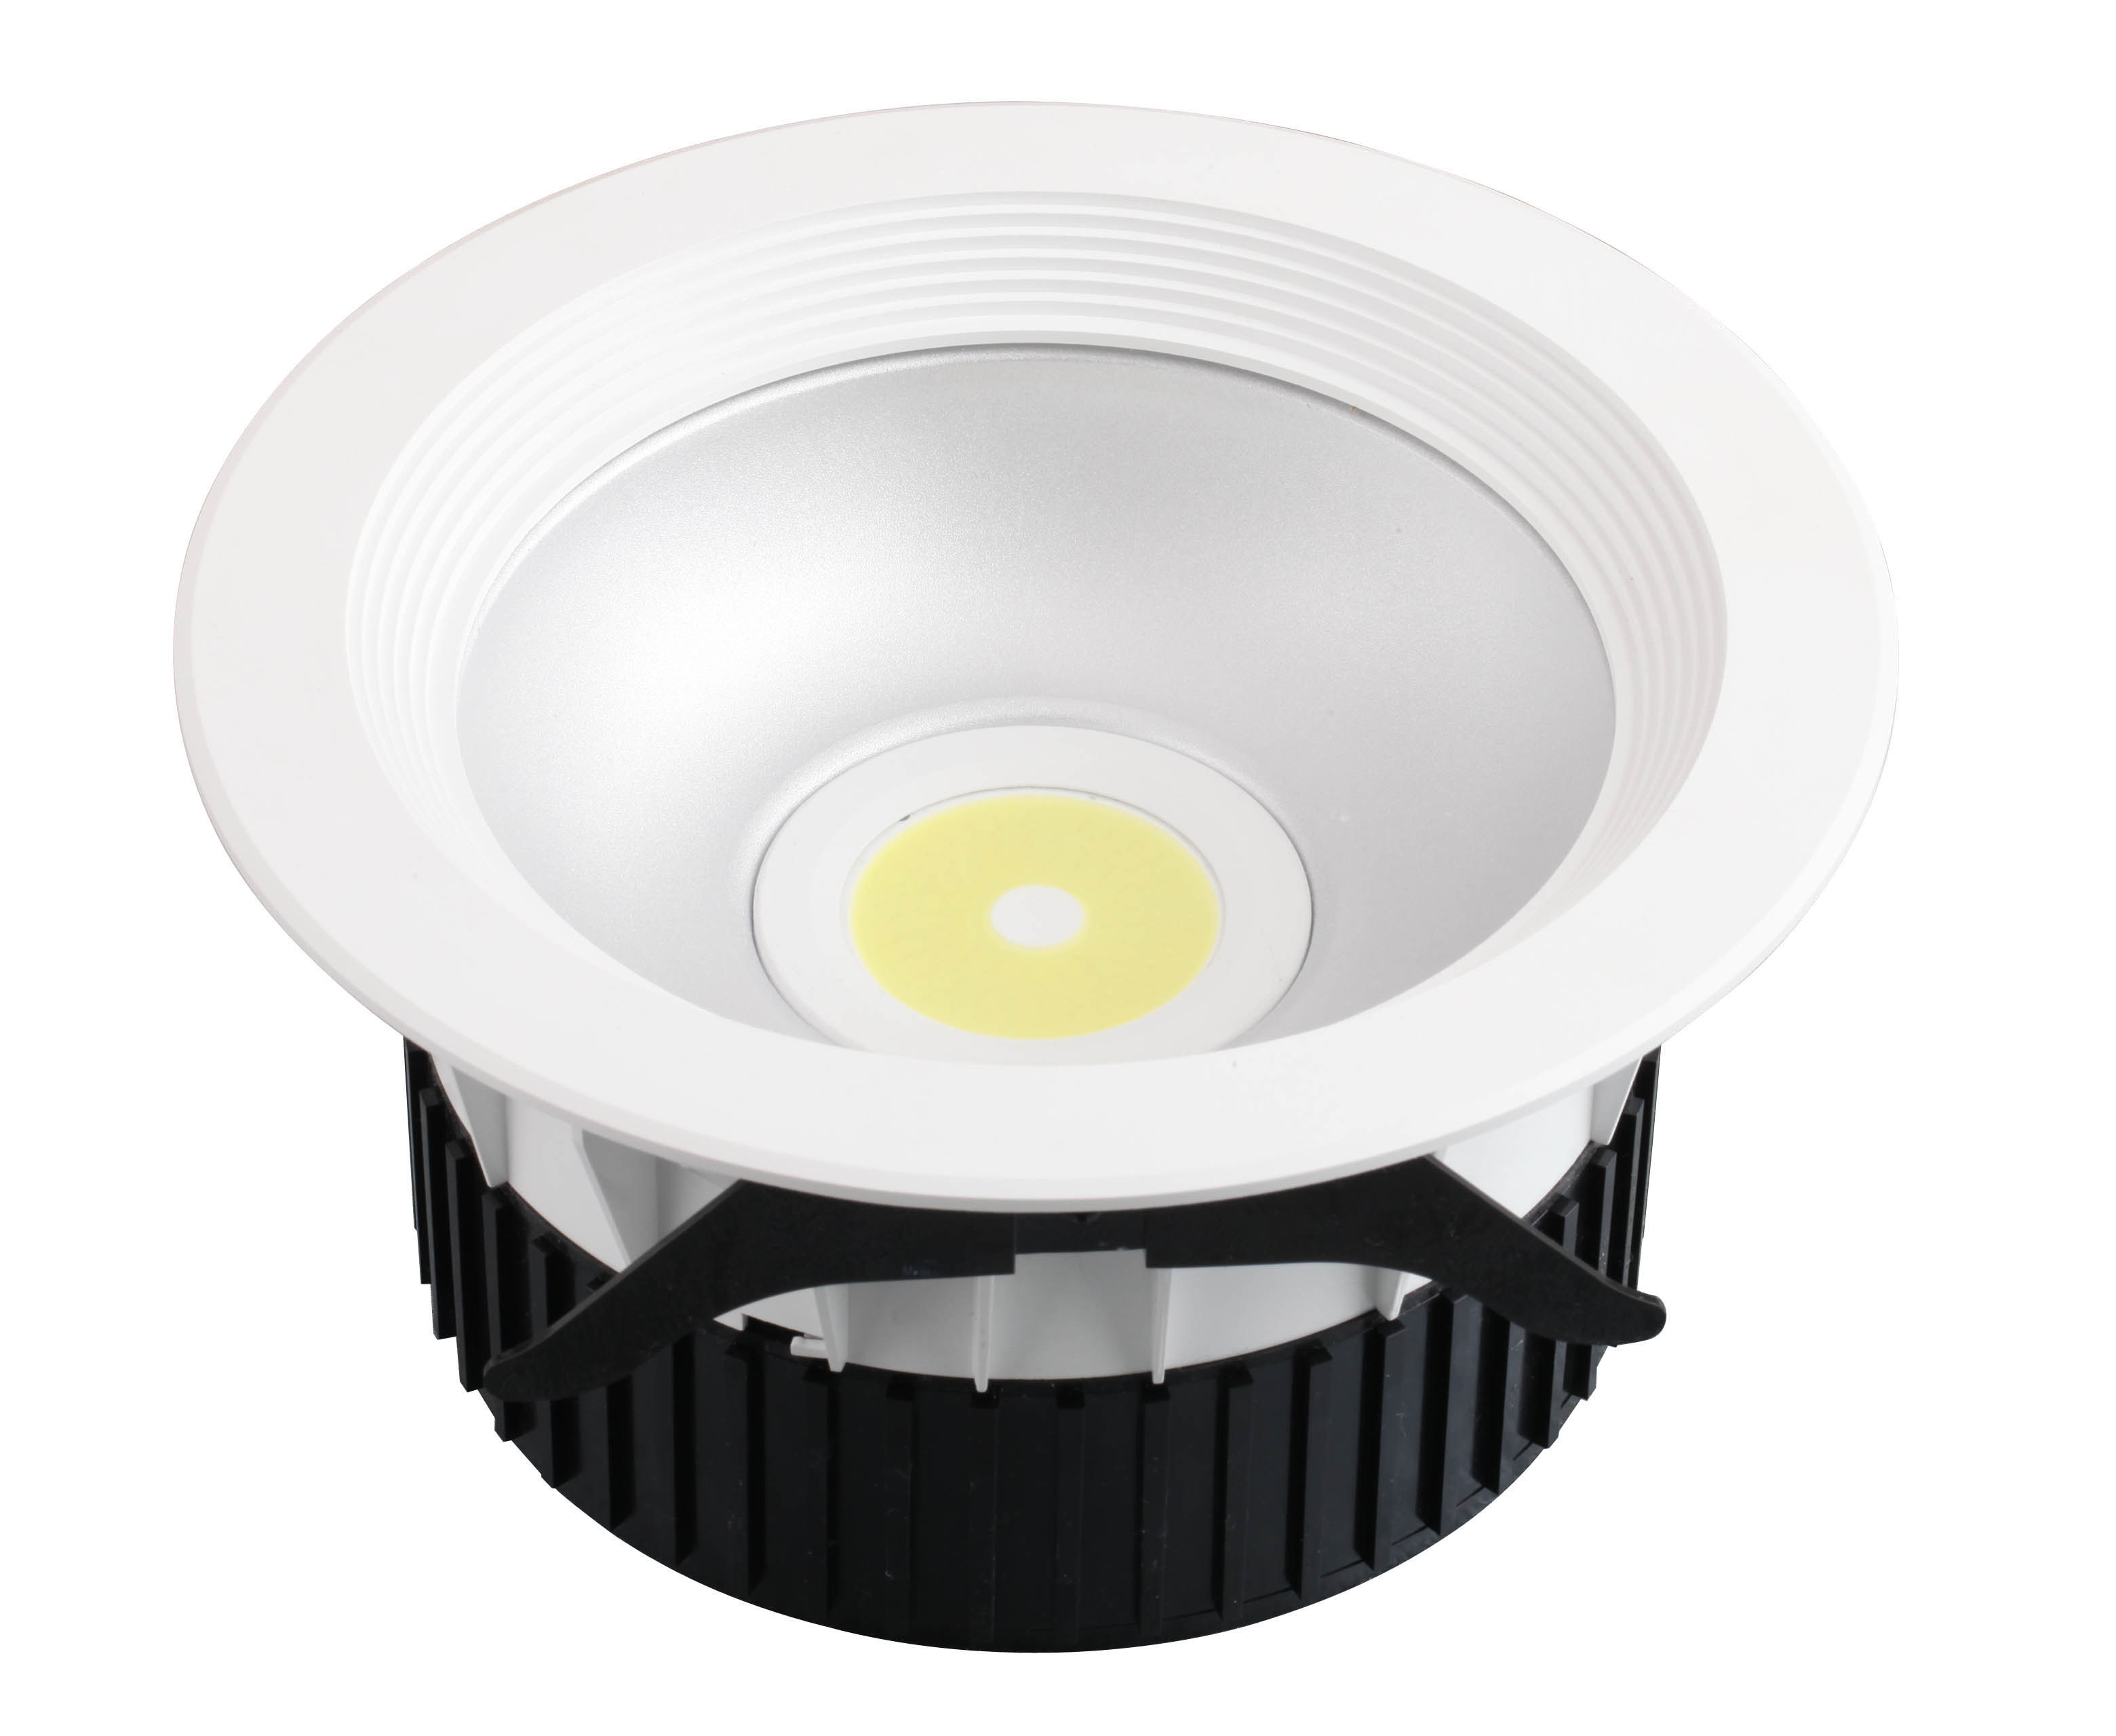 Led Ceiling Lights Made In China : High power pc w led ceiling light china down